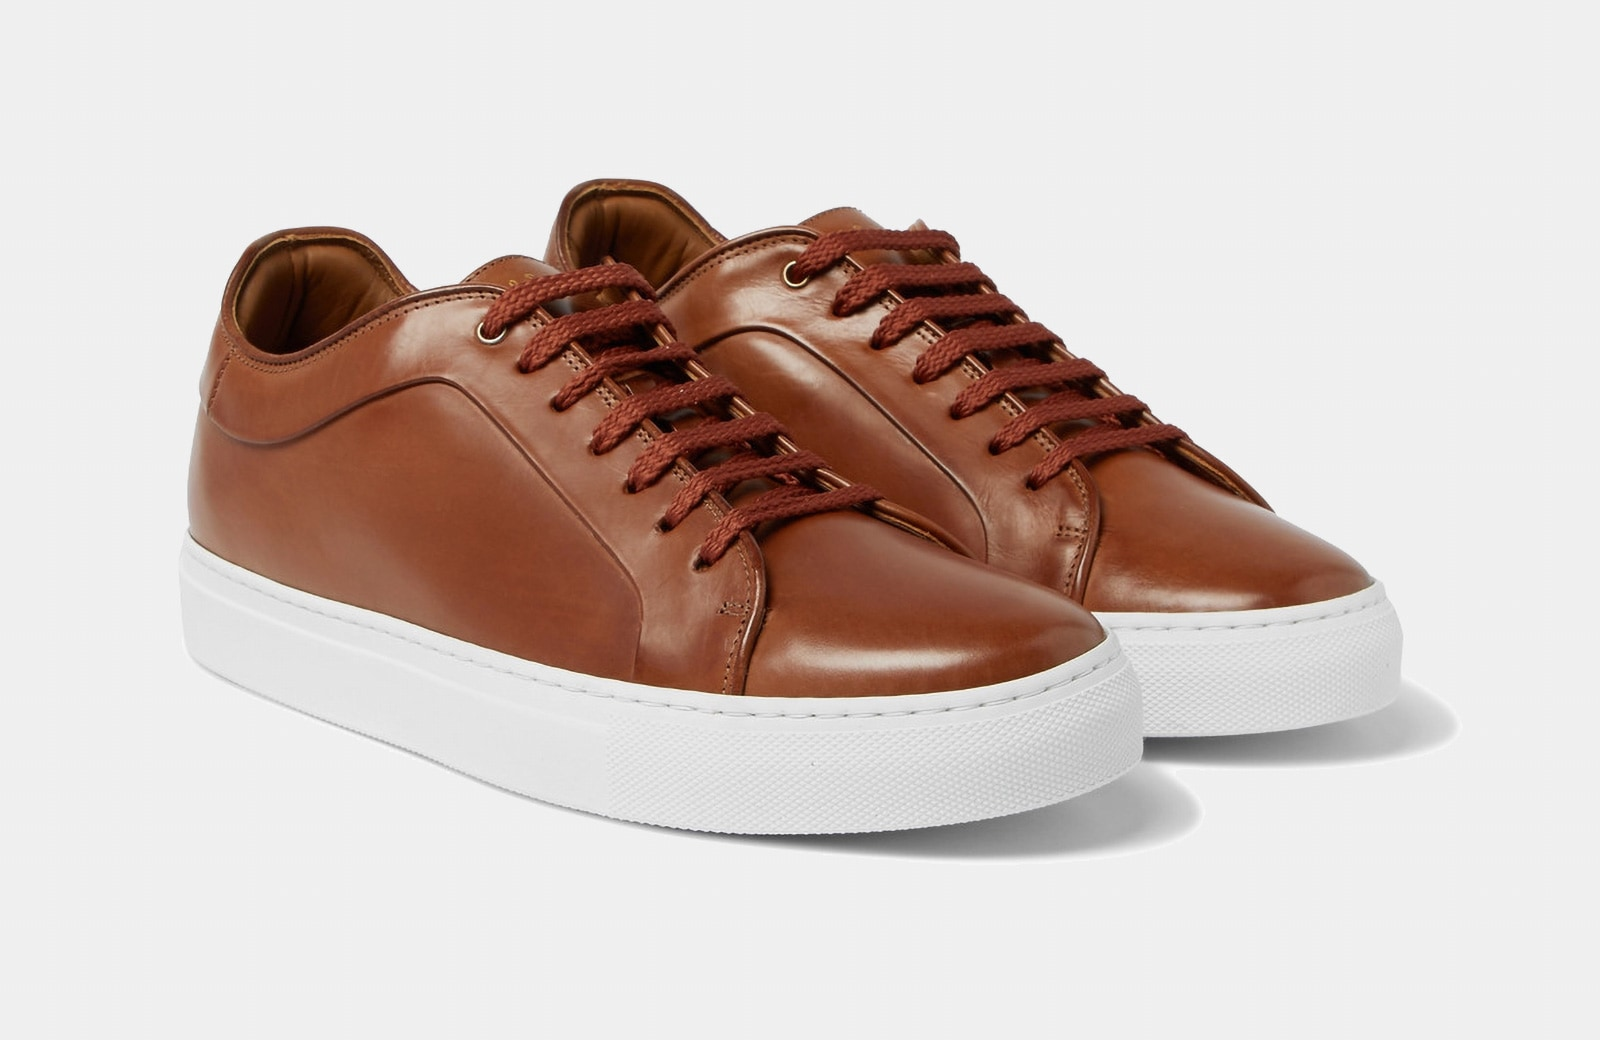 کتونی مردانه The premium leather sneakers